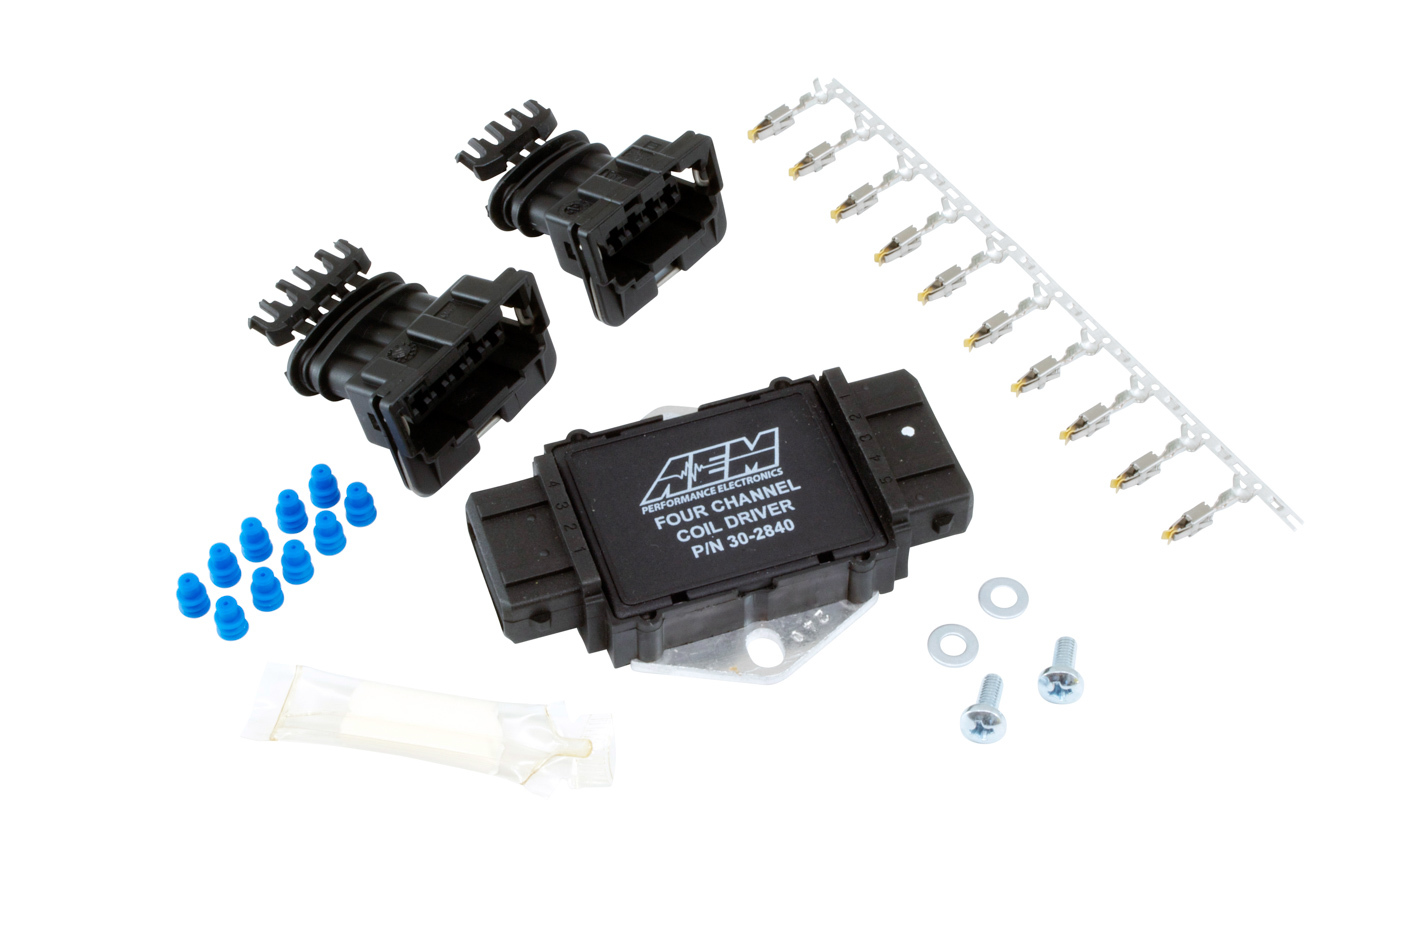 AEM 30-2840 Ignition Coil Drivers, 4 Channel, Each